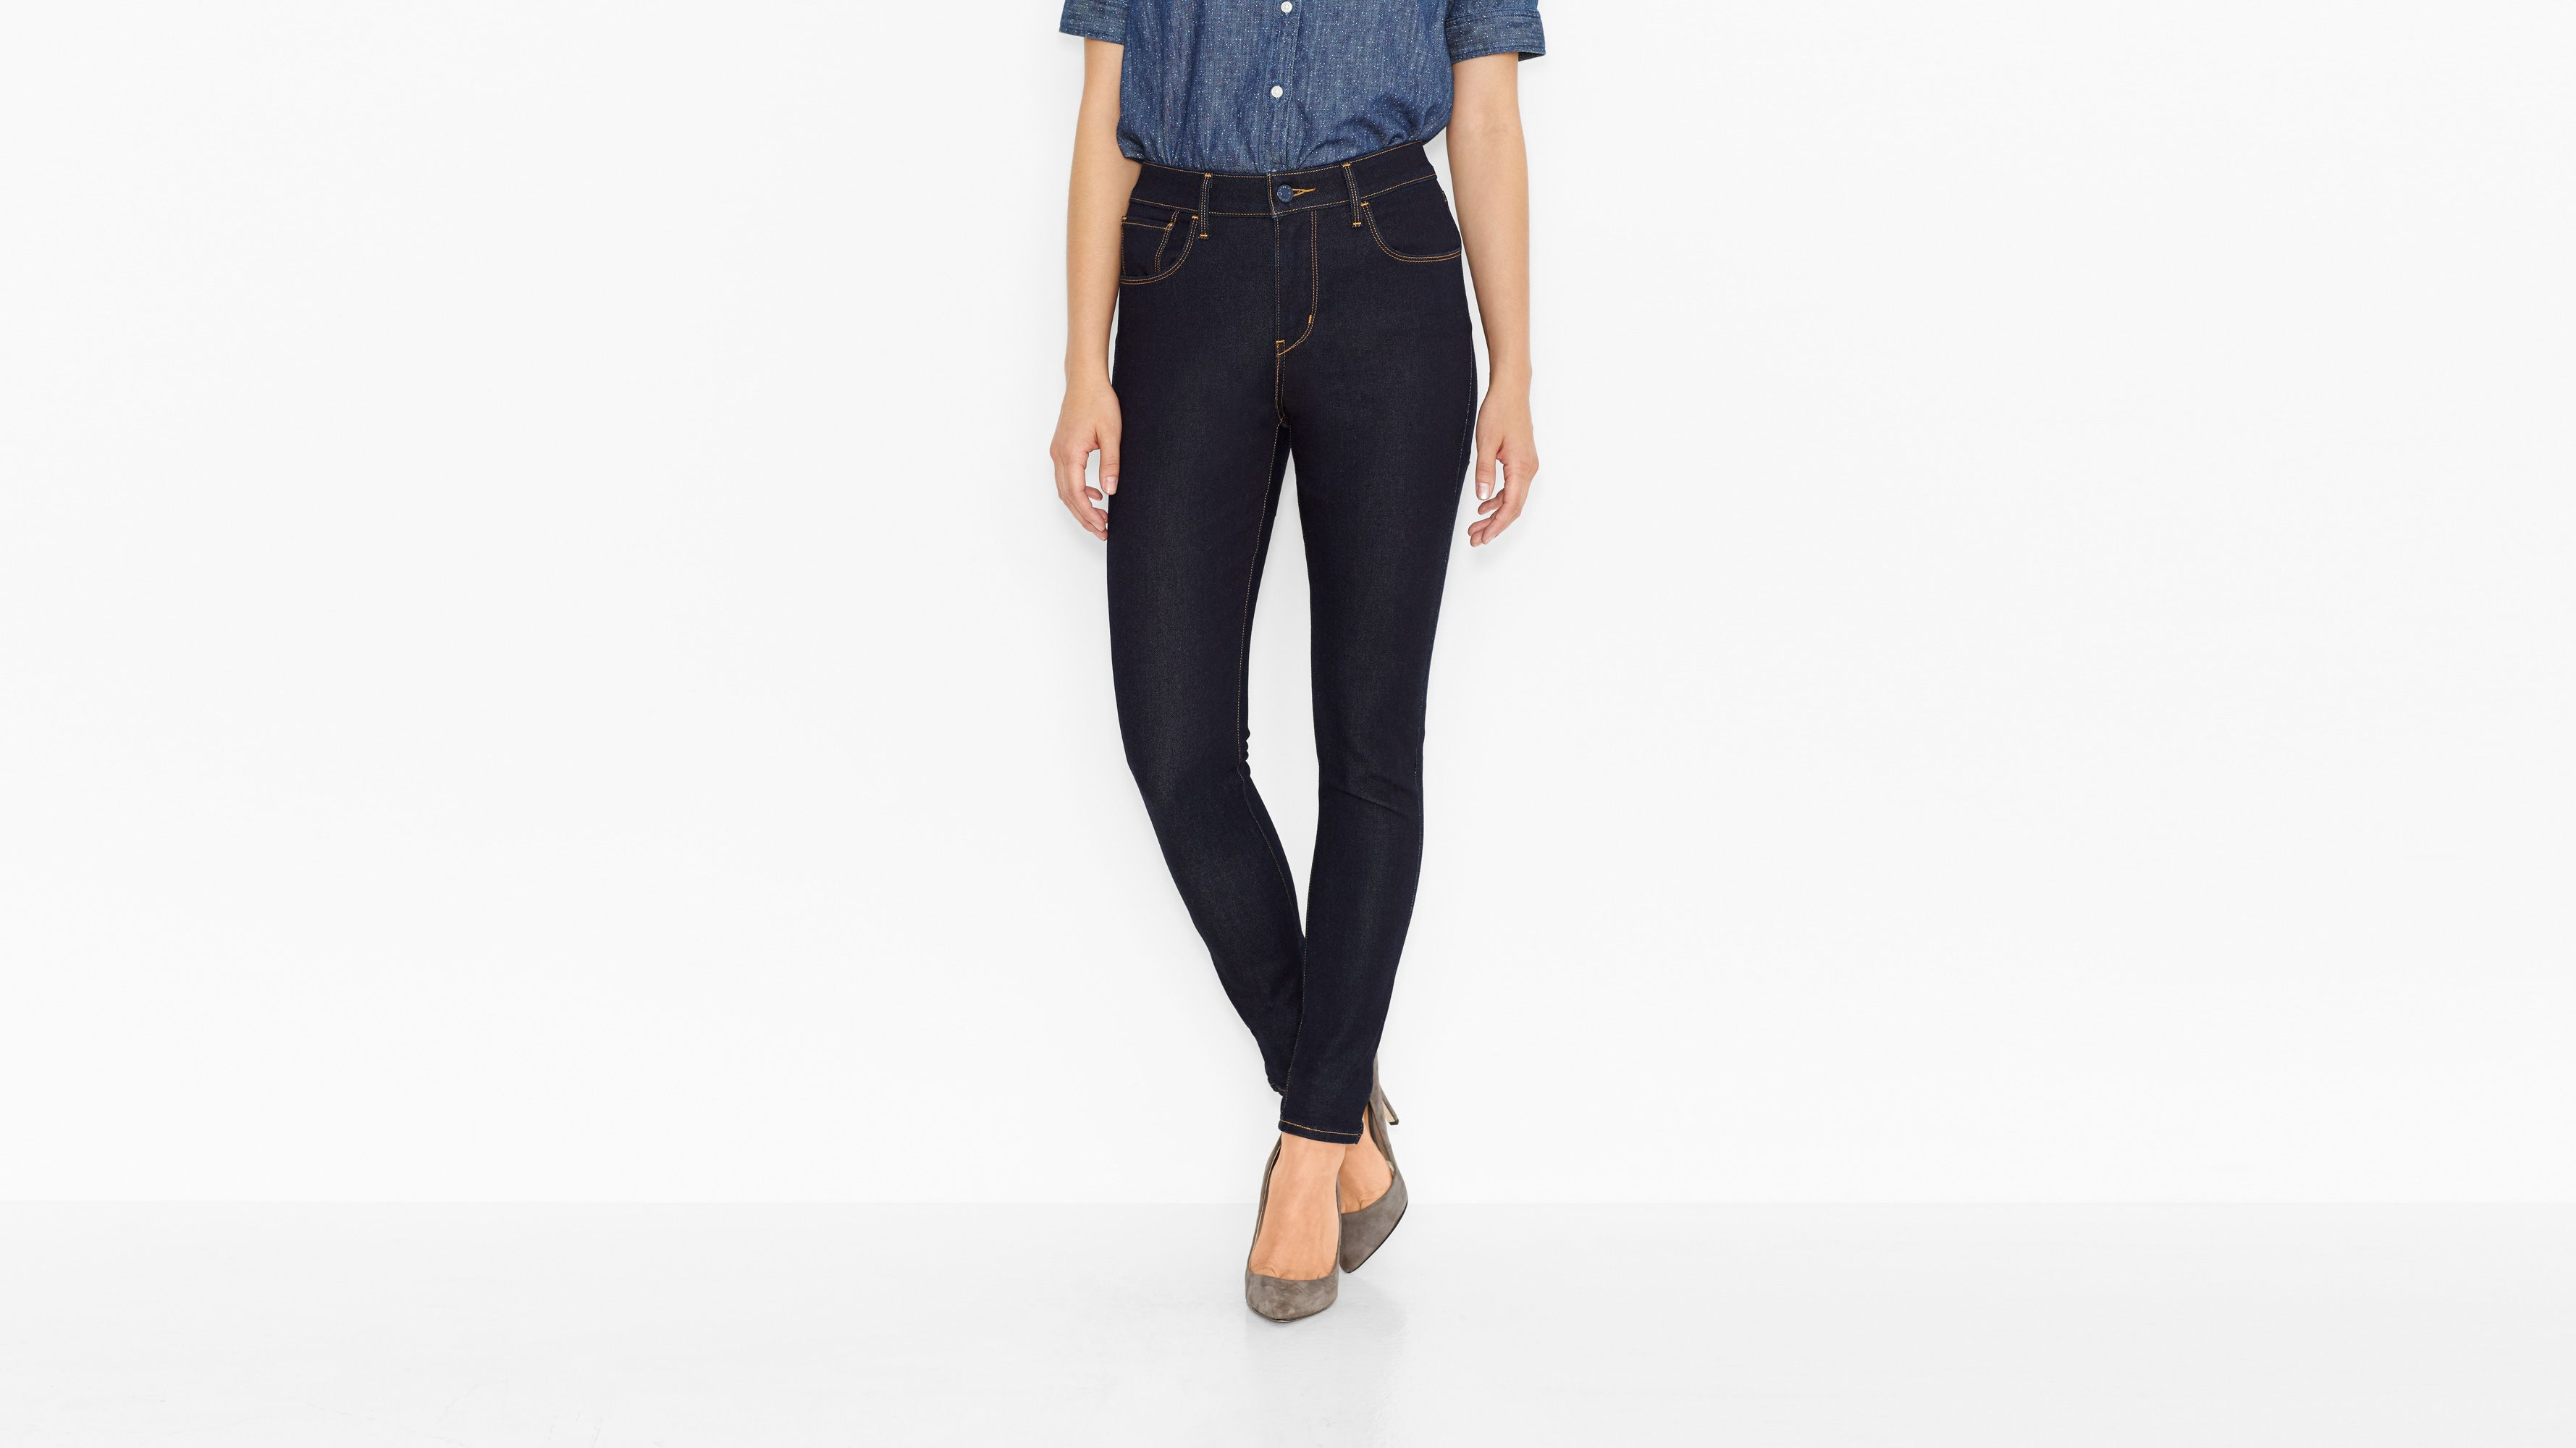 High Rise Skinny Jeans - Extra Shade